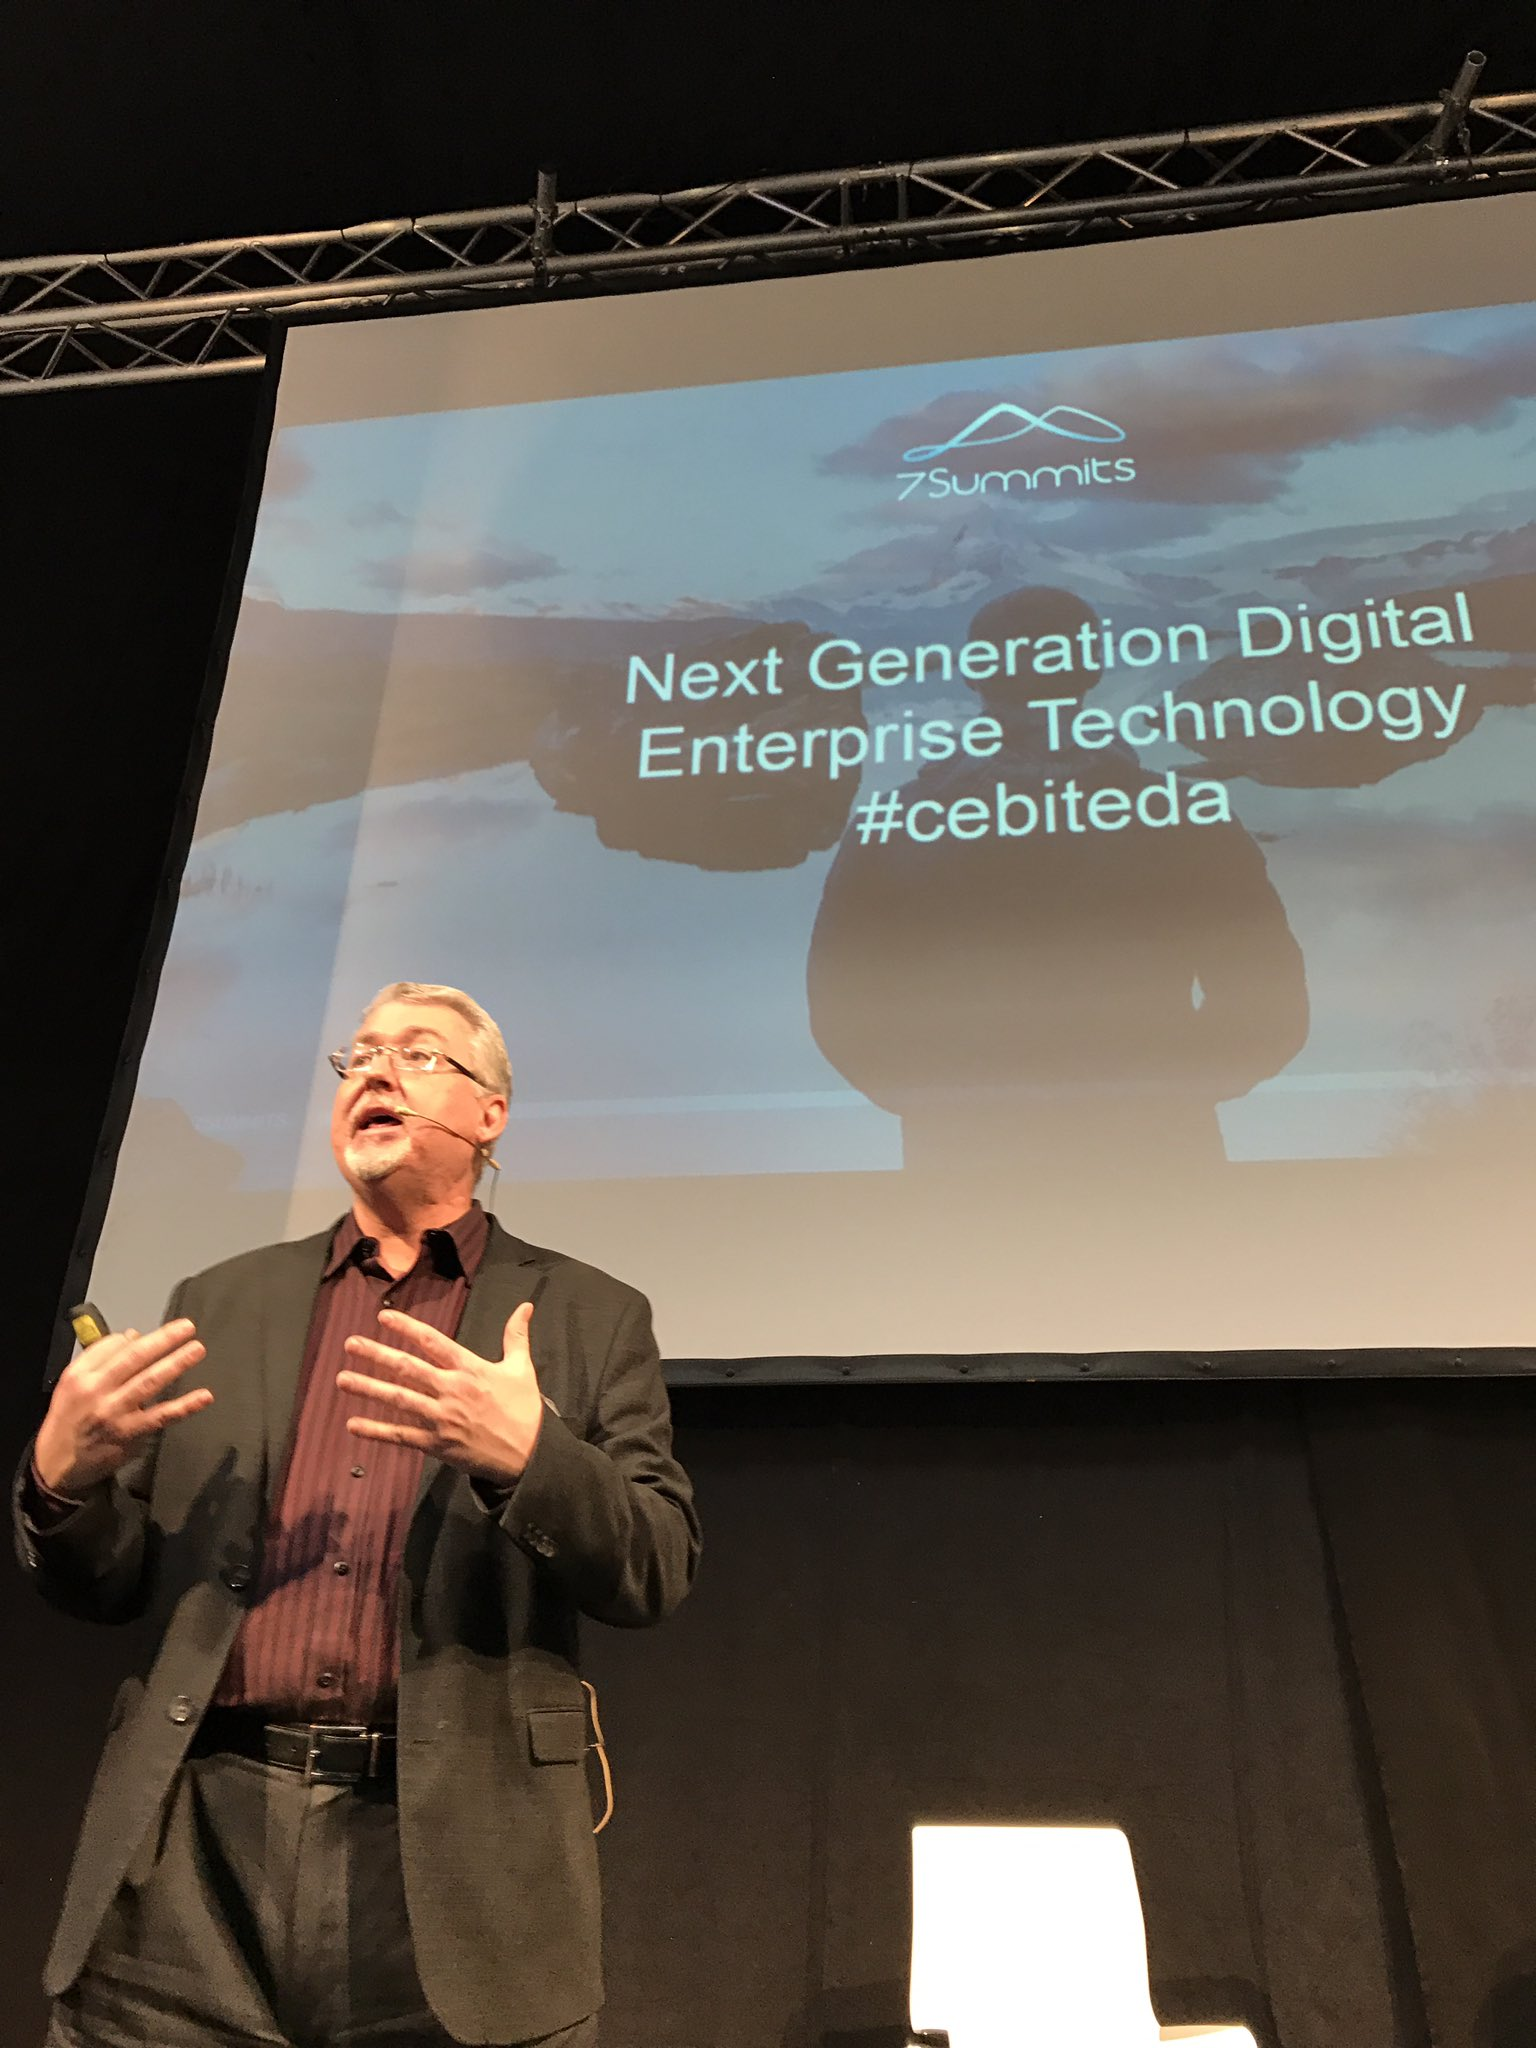 Happy to hear @dhinchcliffe #cebiteda https://t.co/2UQ2o3BJrU